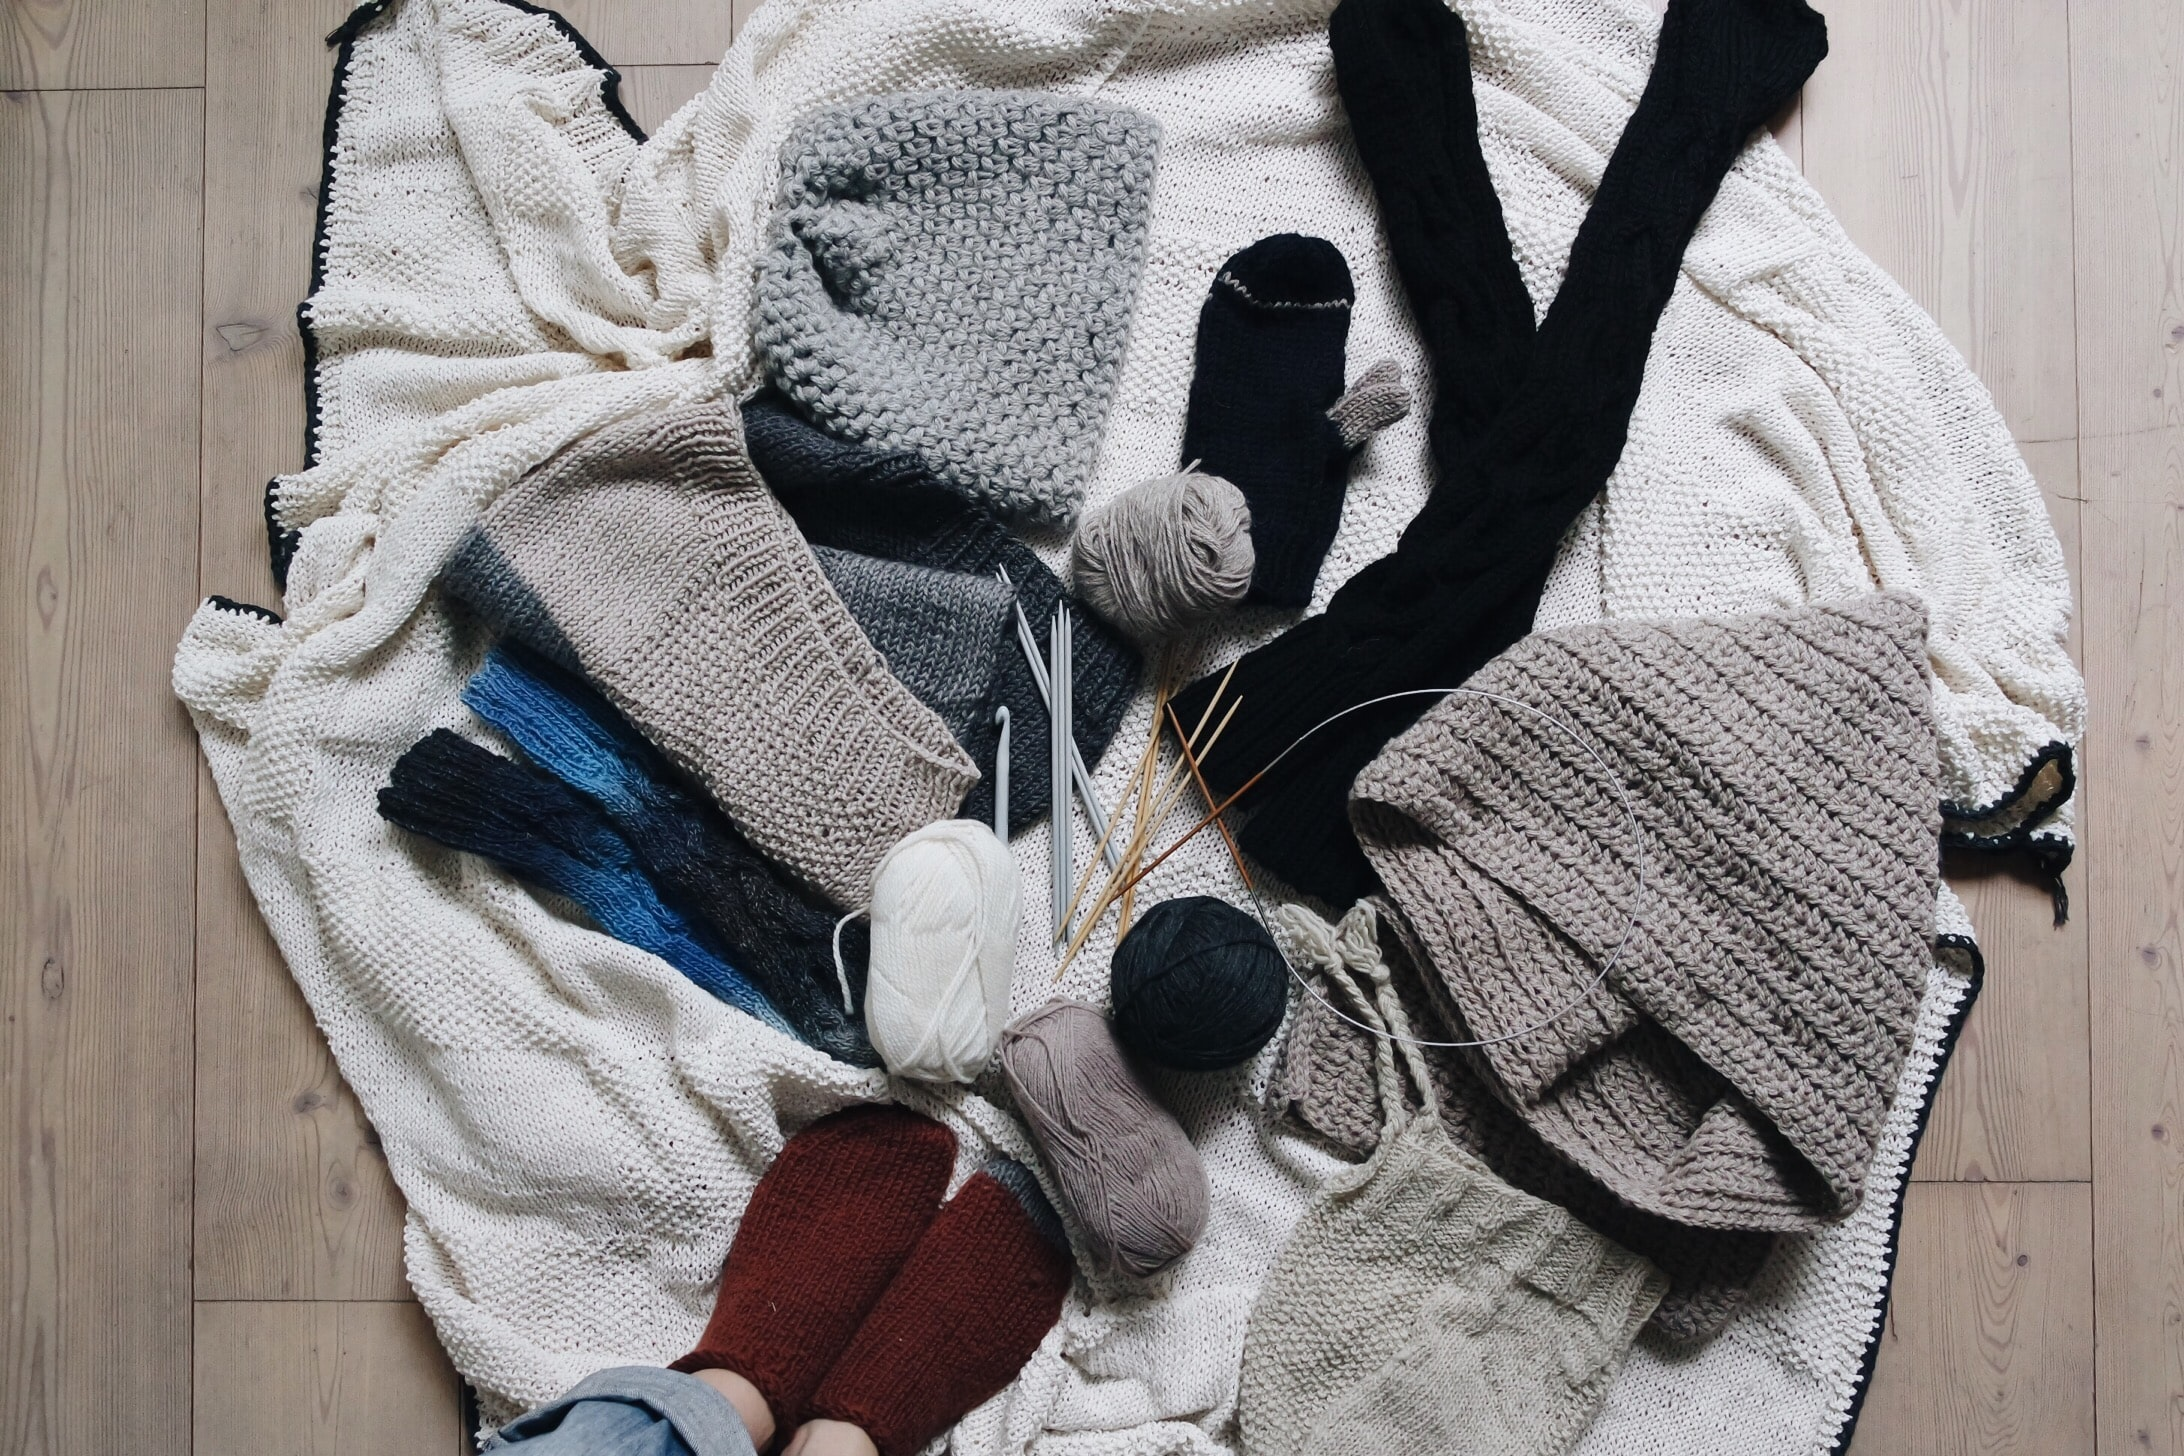 Knit socks, blankets, sweaters, and knitting needles in Milan